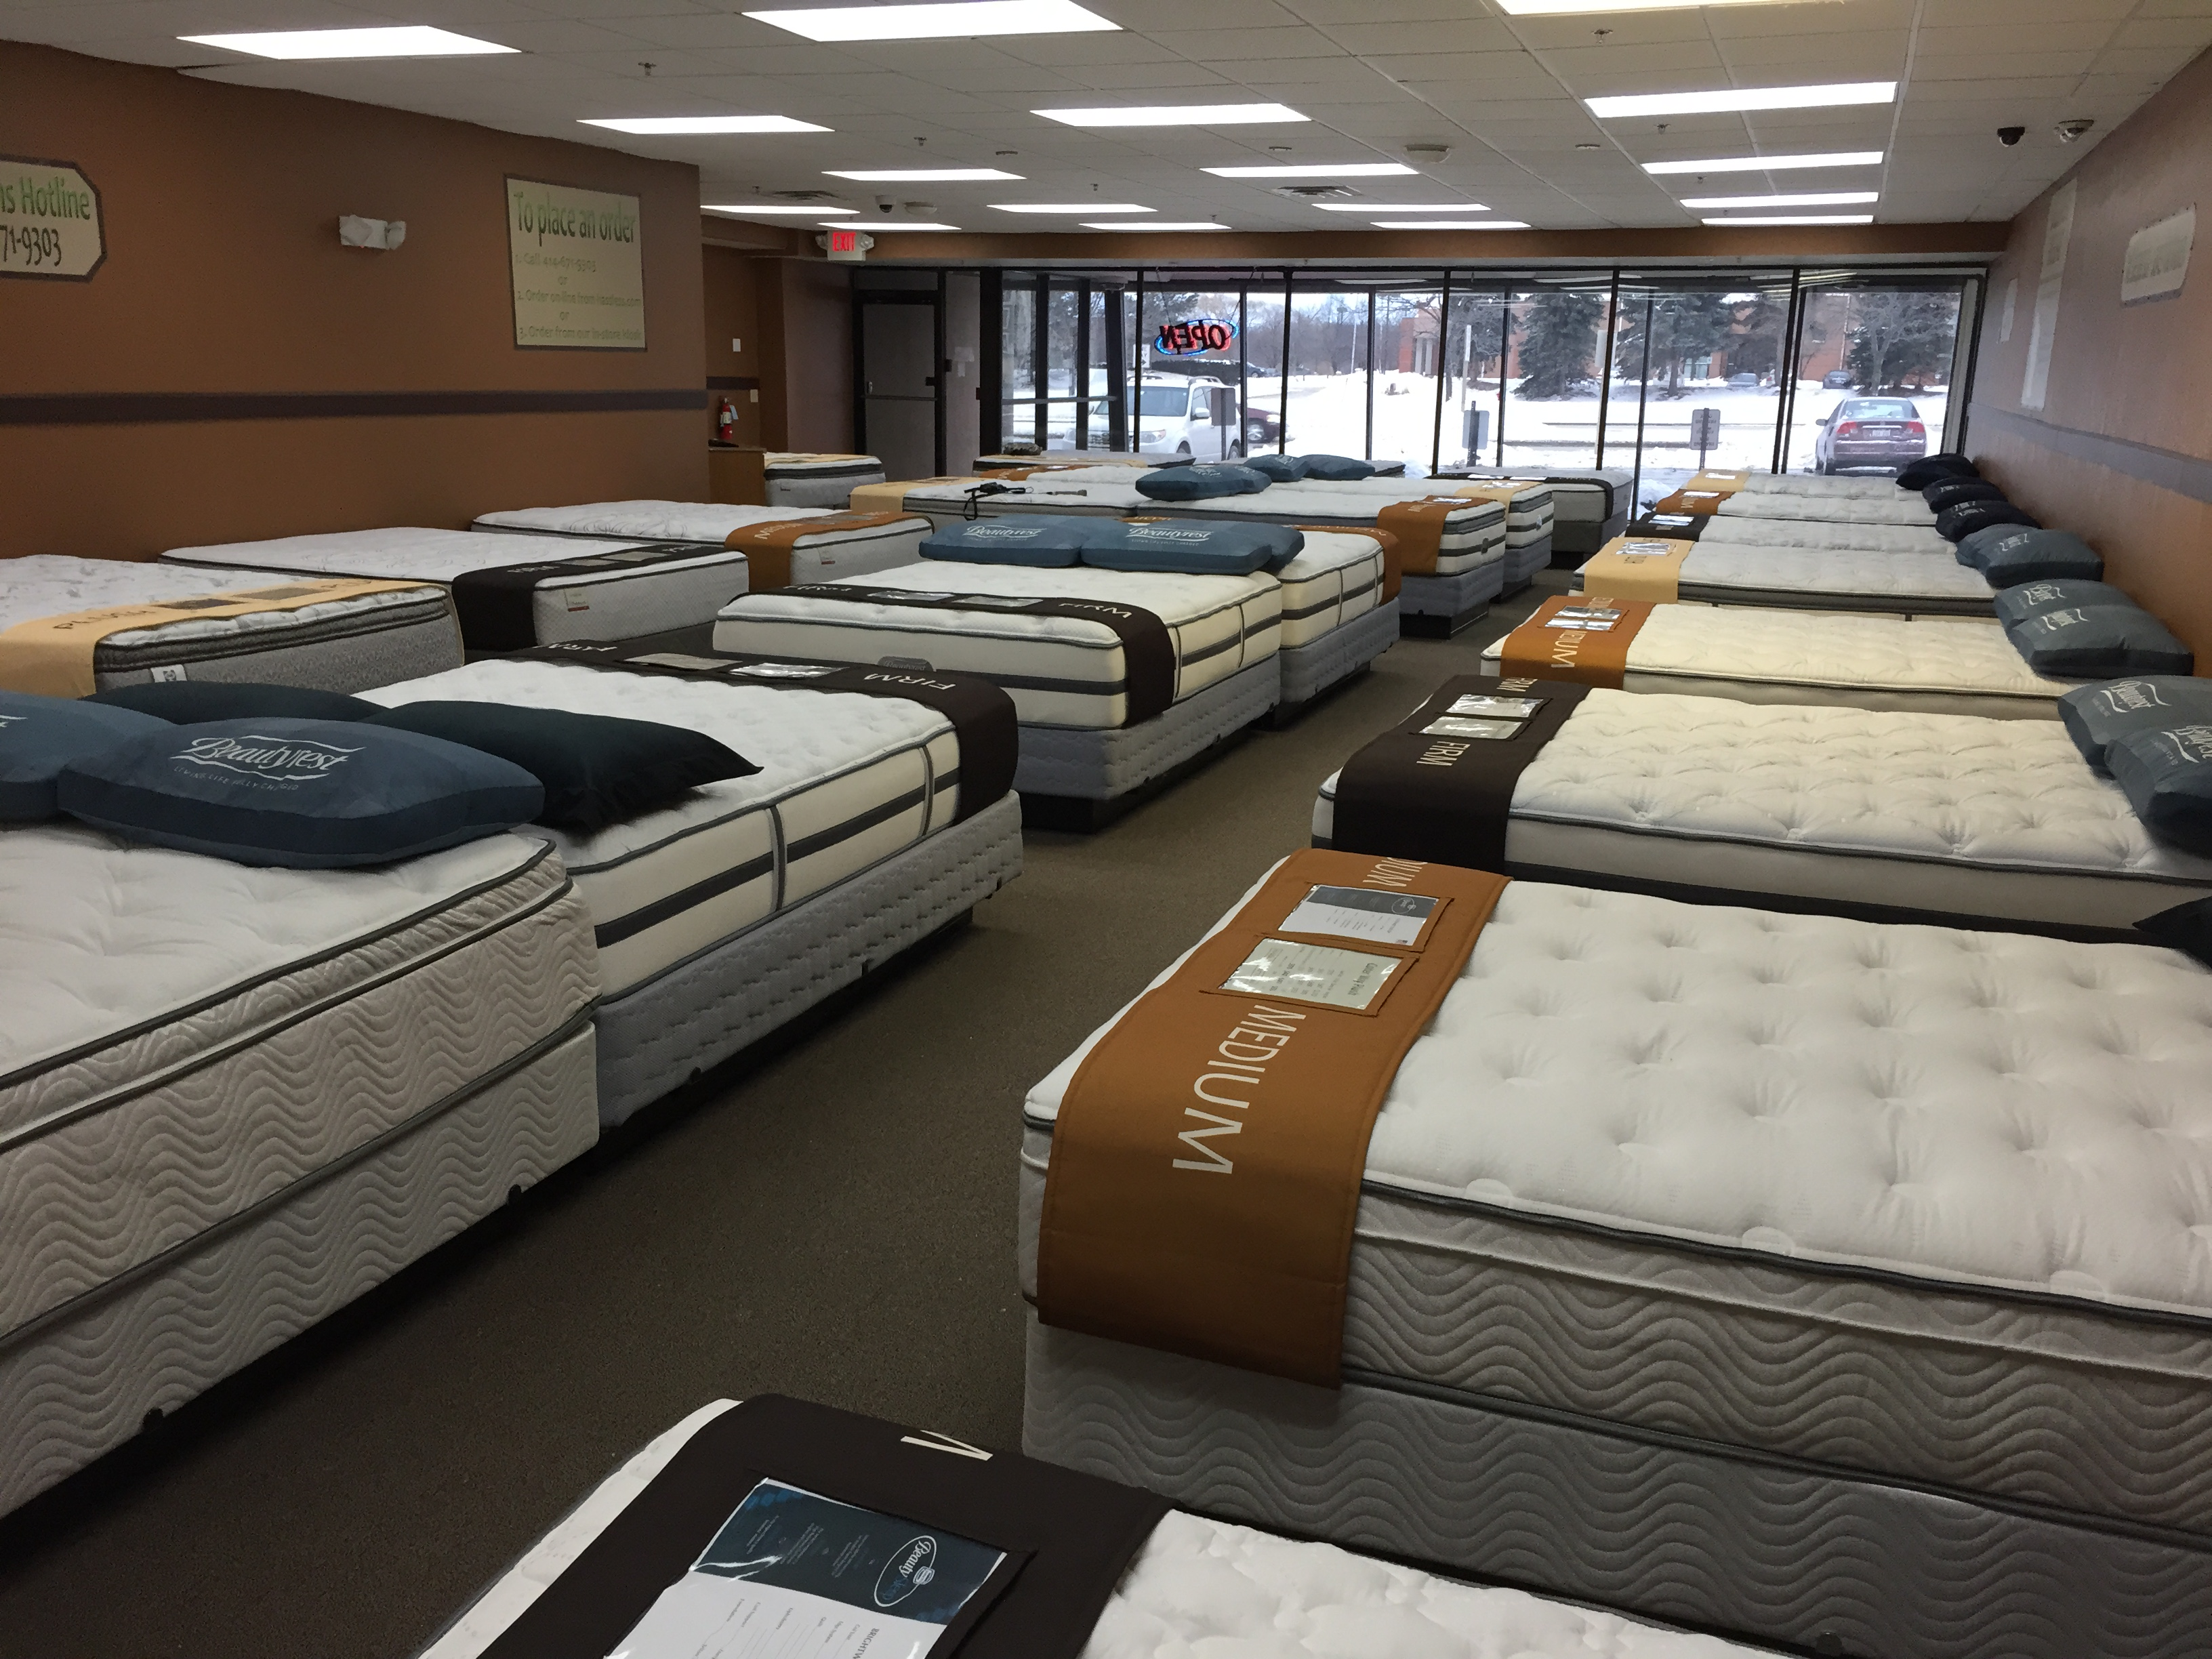 Beds Warehouse Milwaukee Area Mattress Store Tries Quotemployee Free